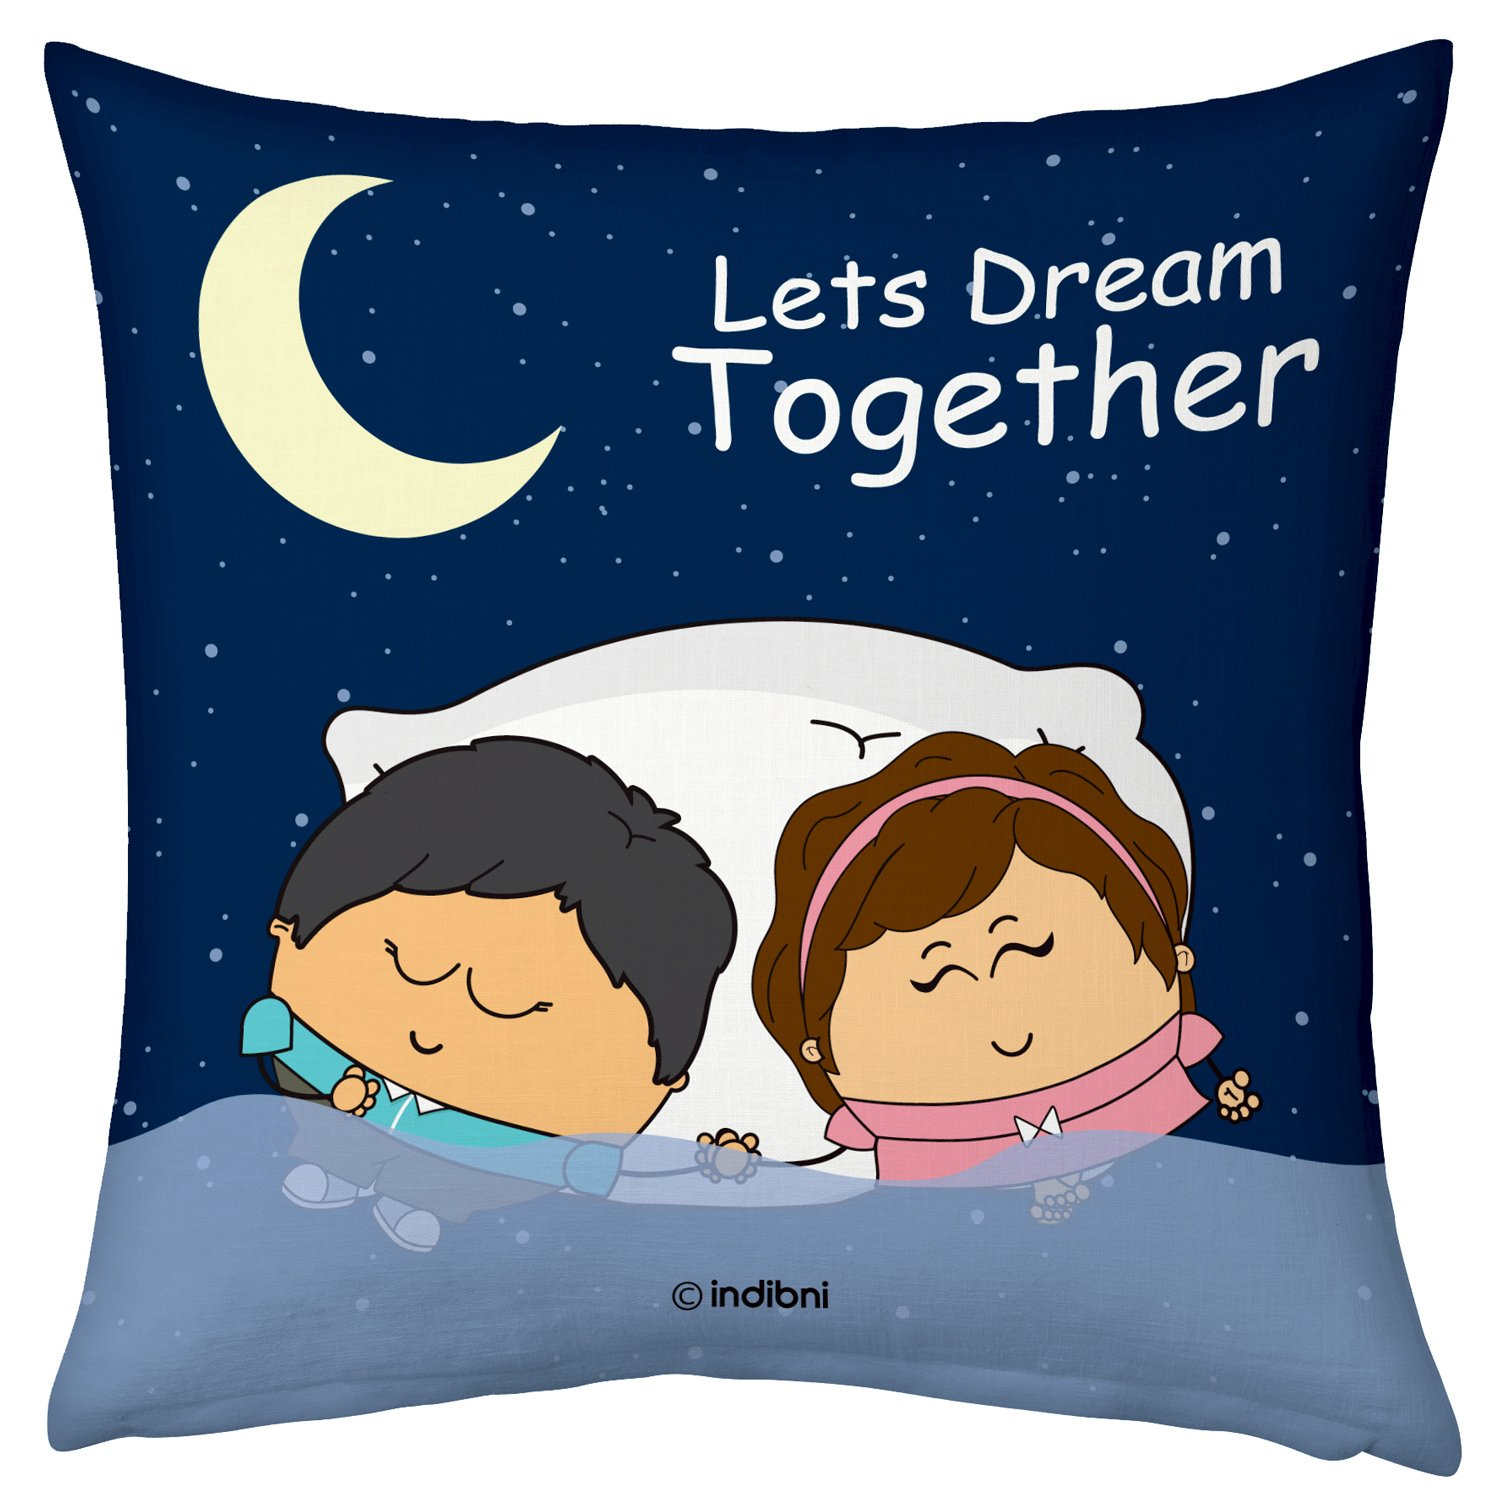 Valentine Gifts for Boyfriend Girlfriend Blue 12X12 Printed Filled Cushion Cute Couple Dreaming Together Gift for Him Her Fiance Spouse Husband Wife Birthday Anniversary Everyday by indibni